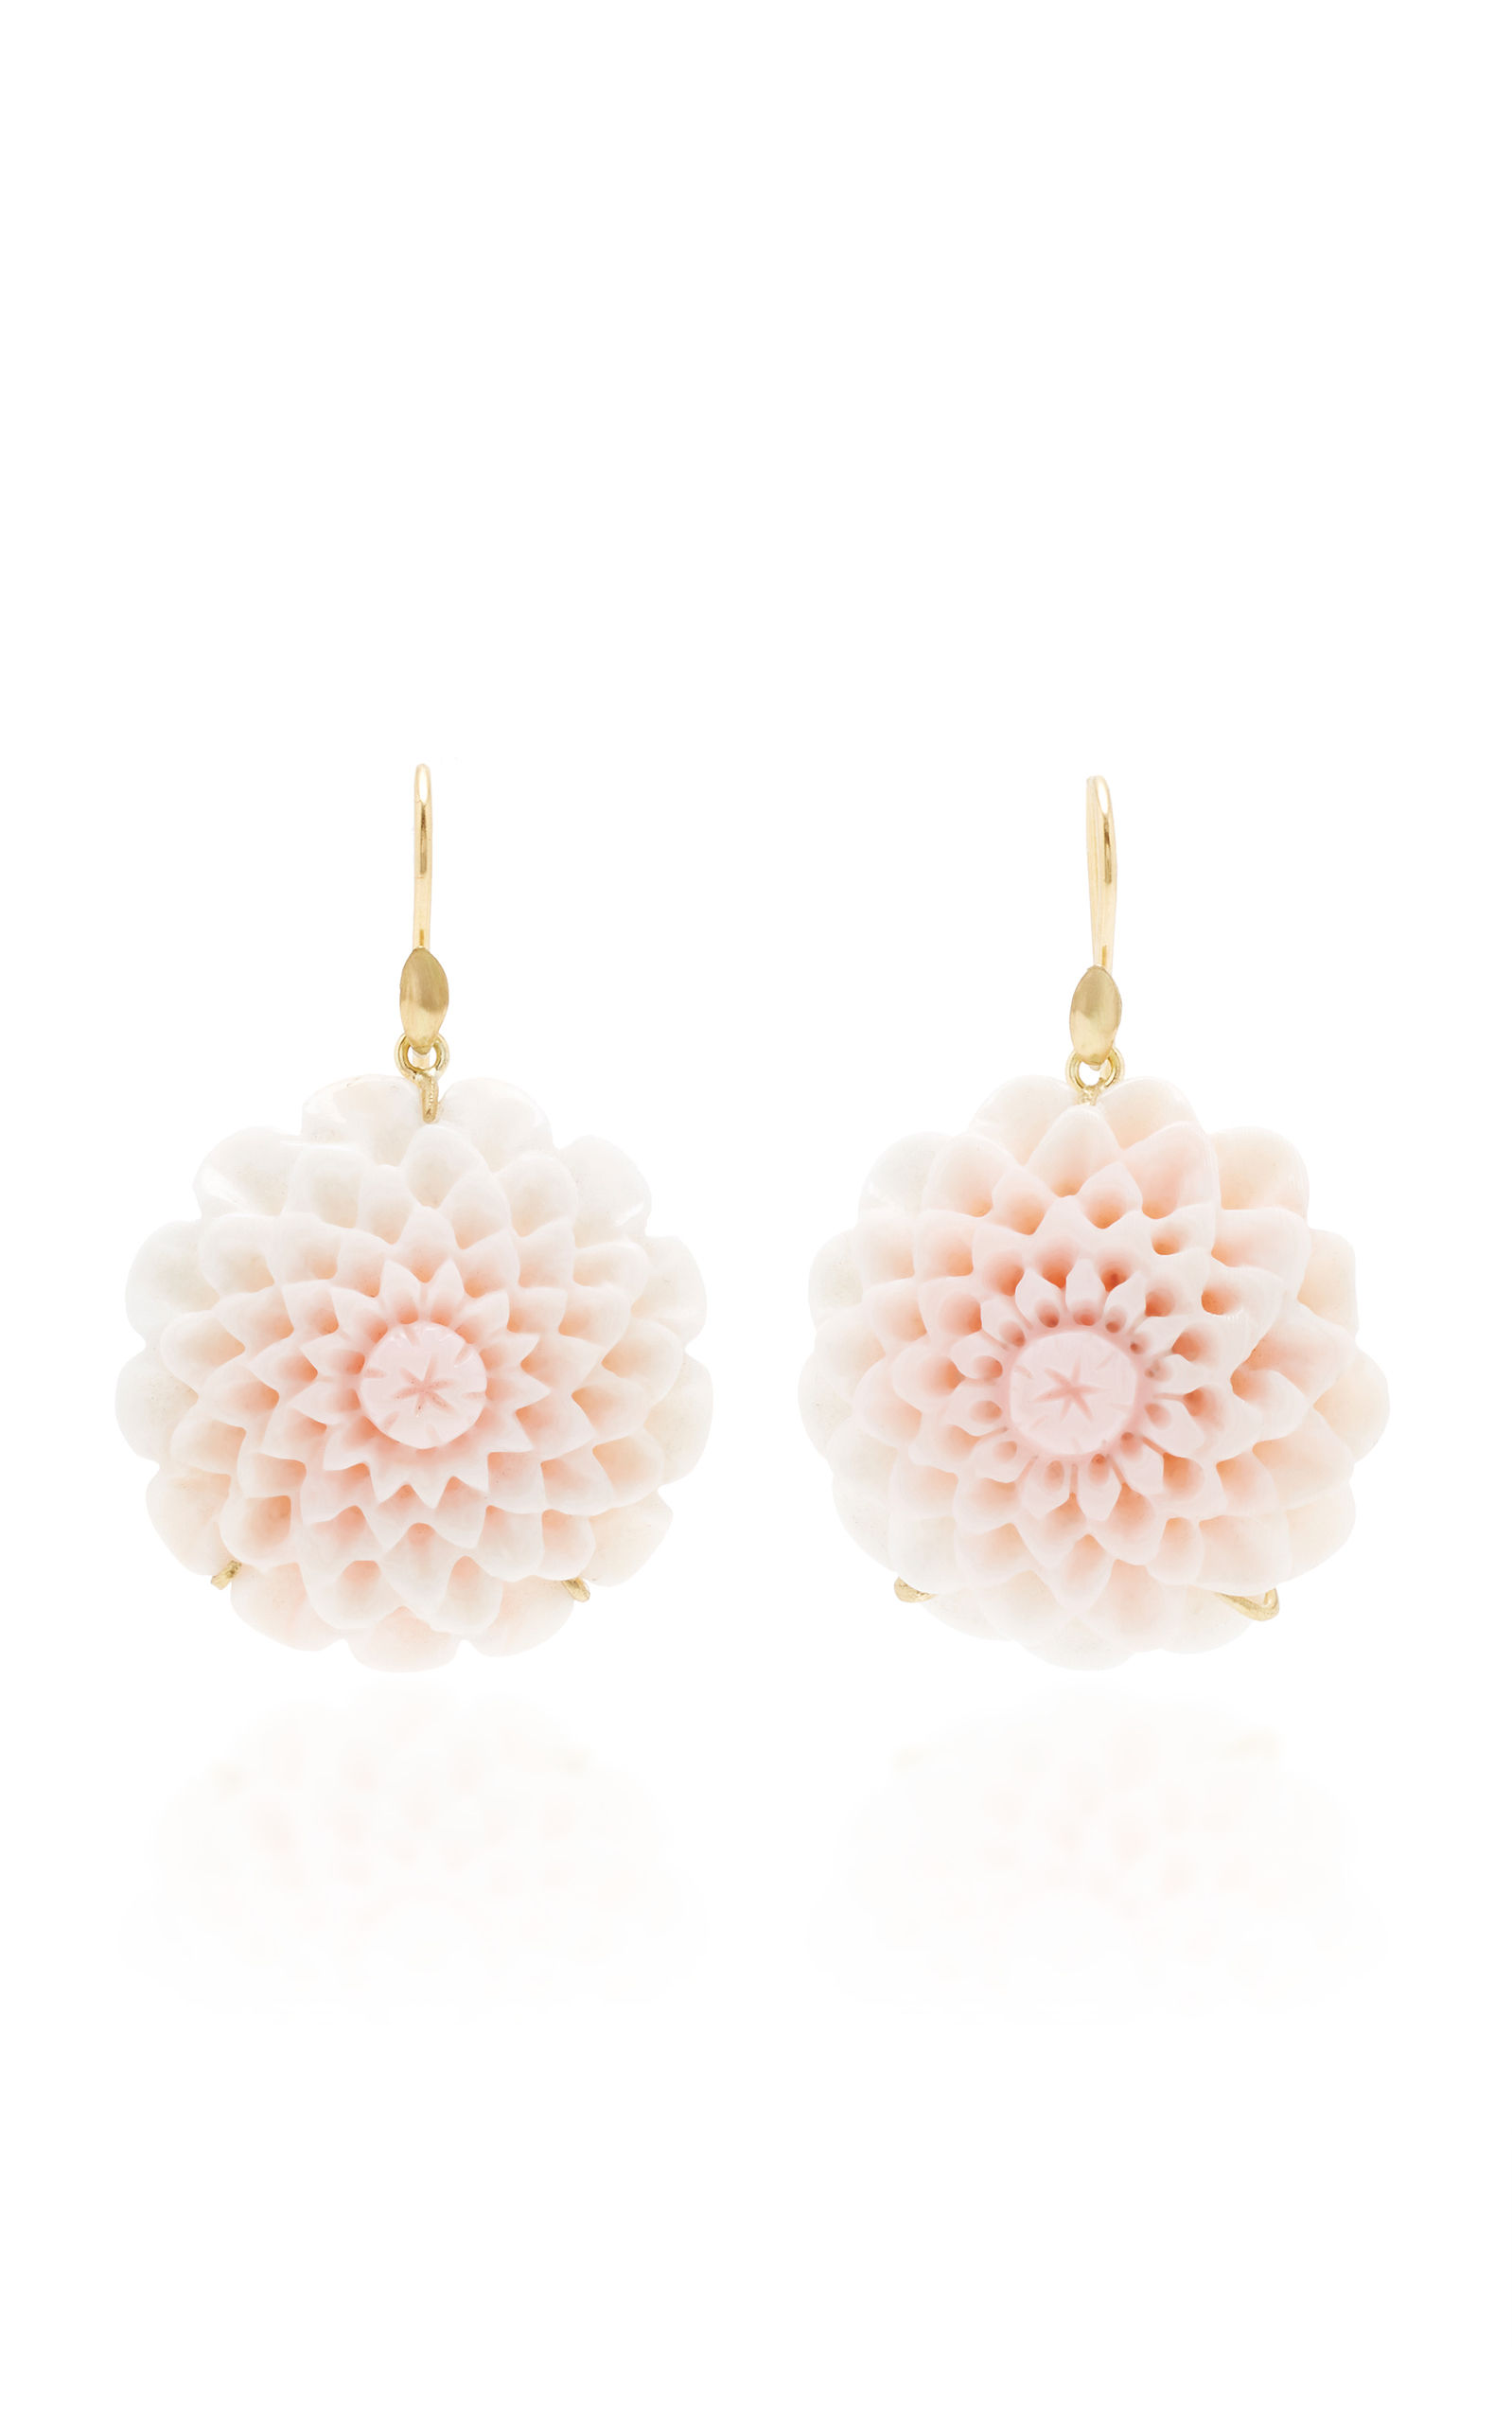 ANNETTE FERDINANDSEN M'O Exclusive: Dahlia Blossom Pink Conch Shell Earring in White